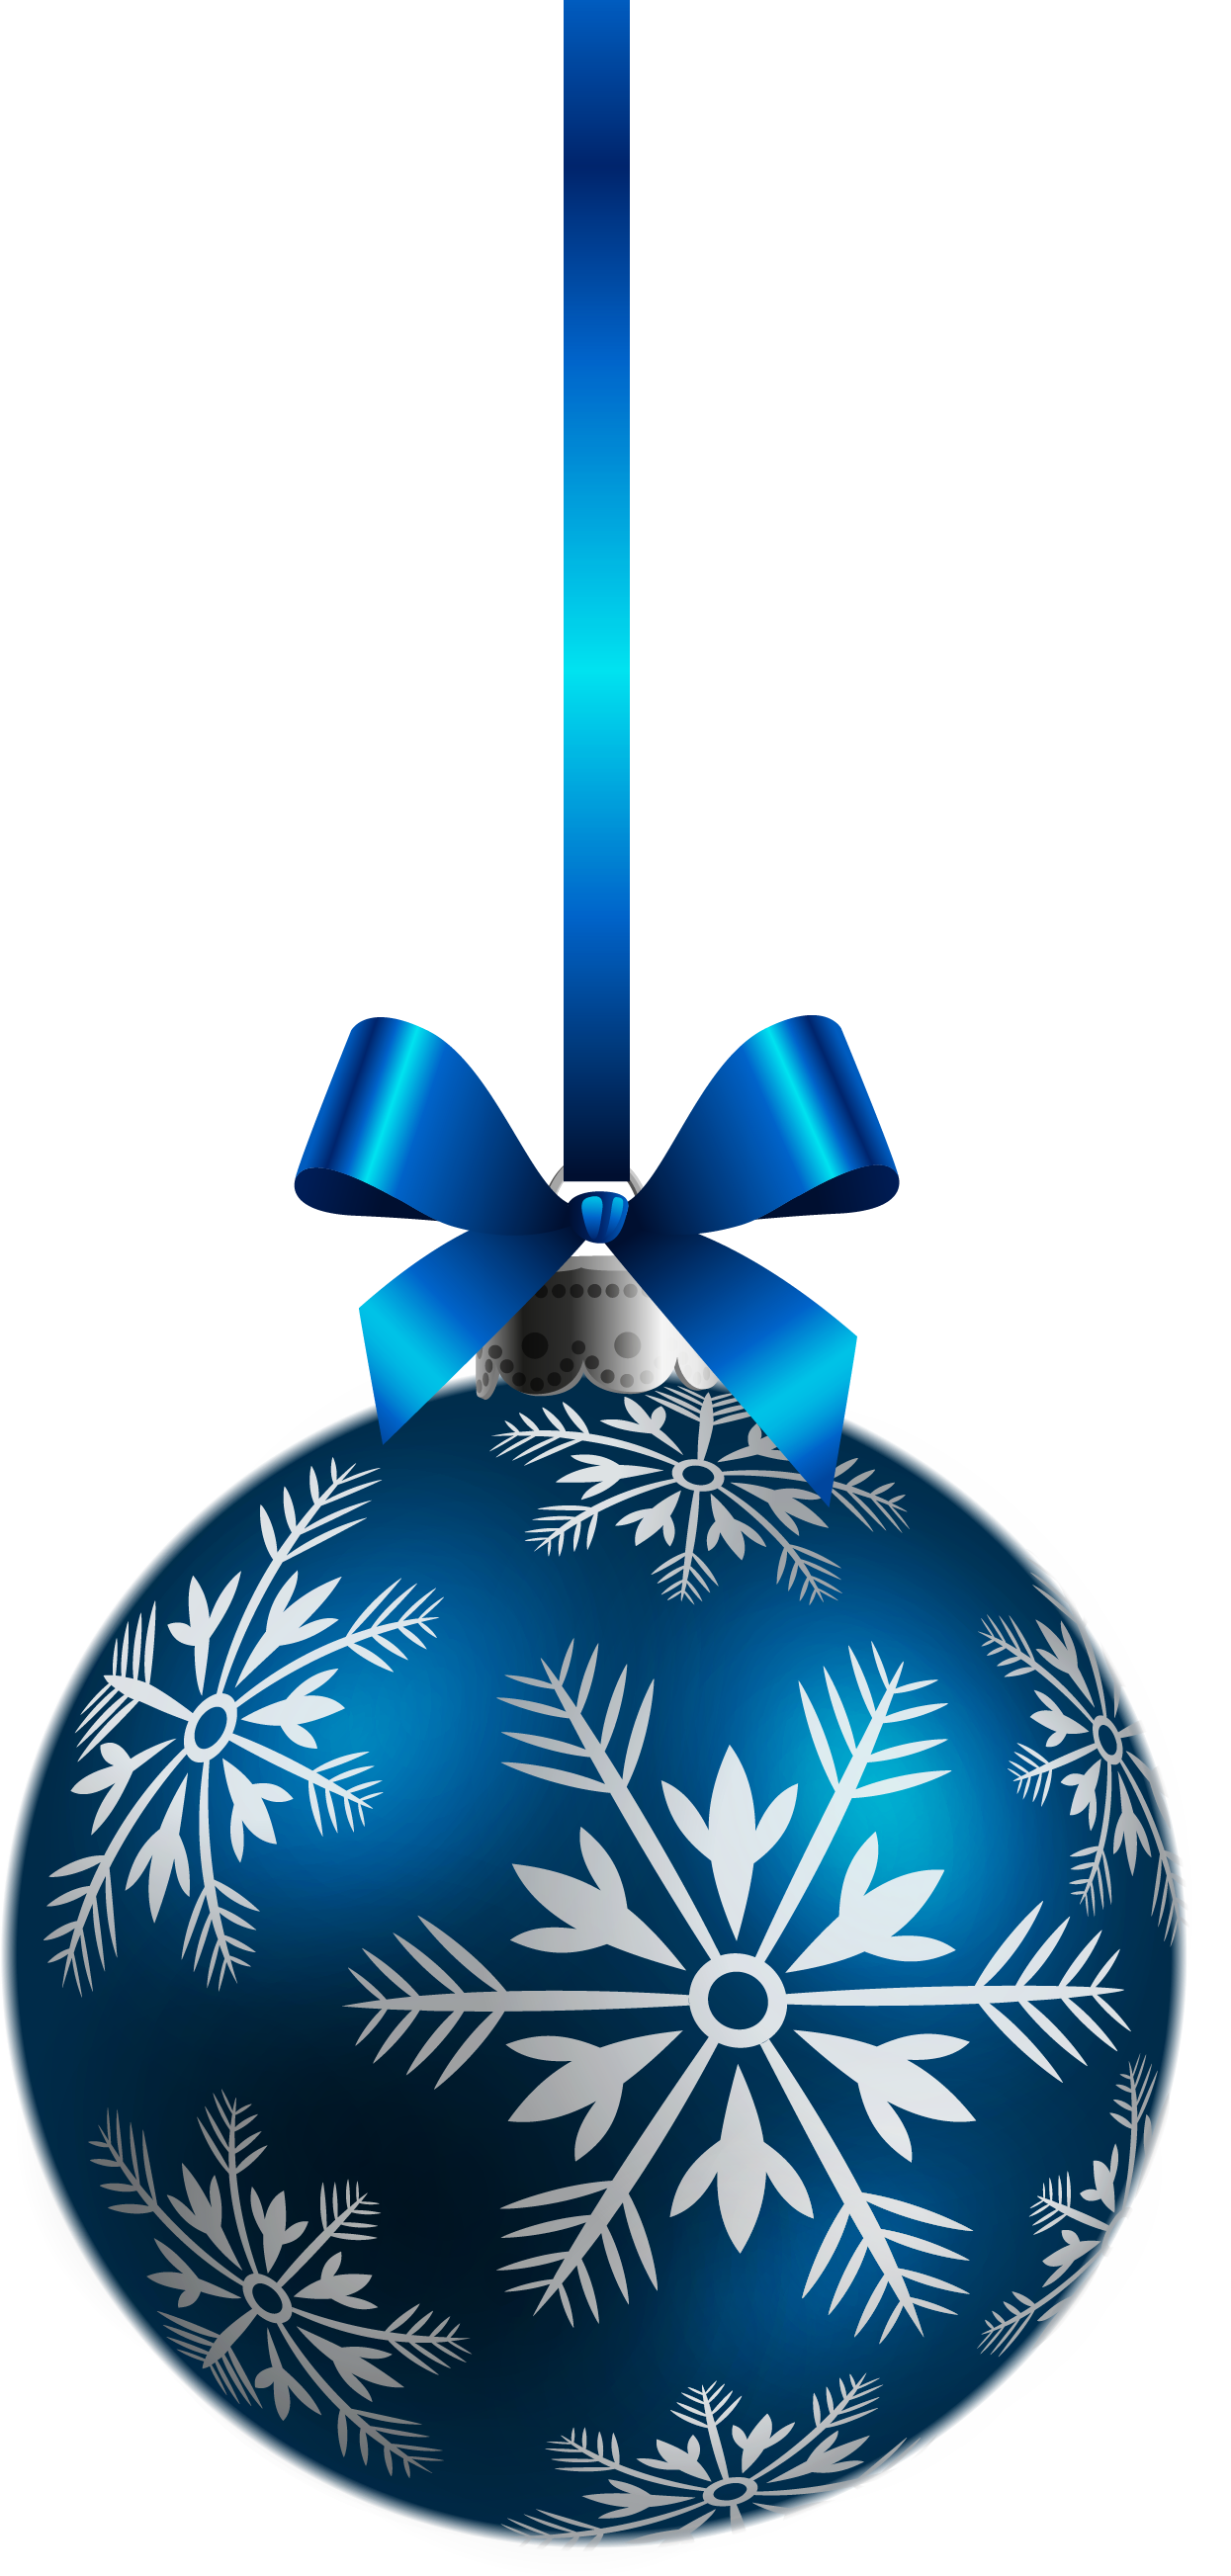 clipart christmas decorations - photo #40